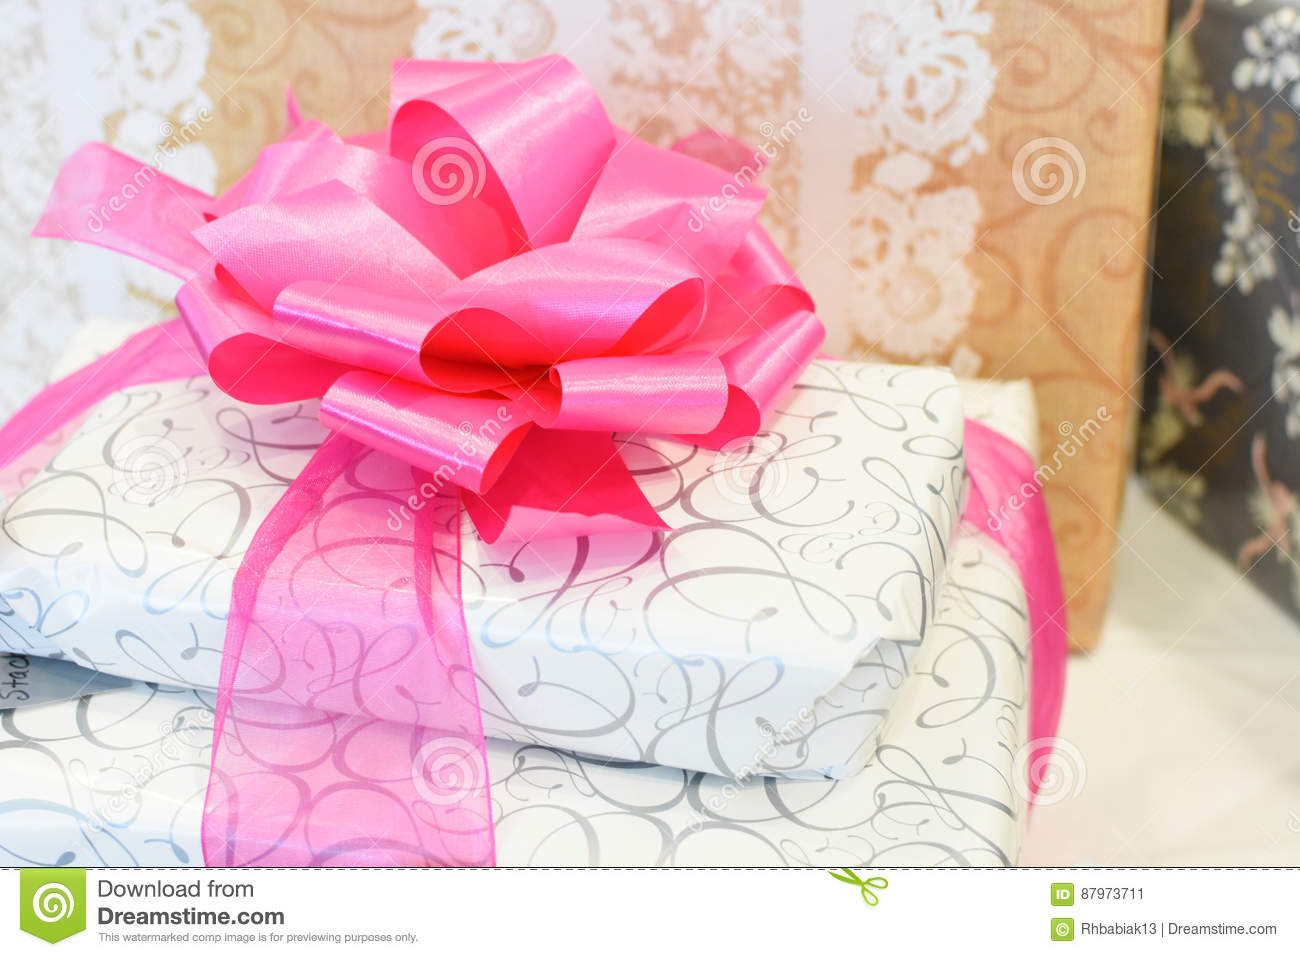 Wrapped Wedding Gifts stock image. Image of curling, bridal - 87973711